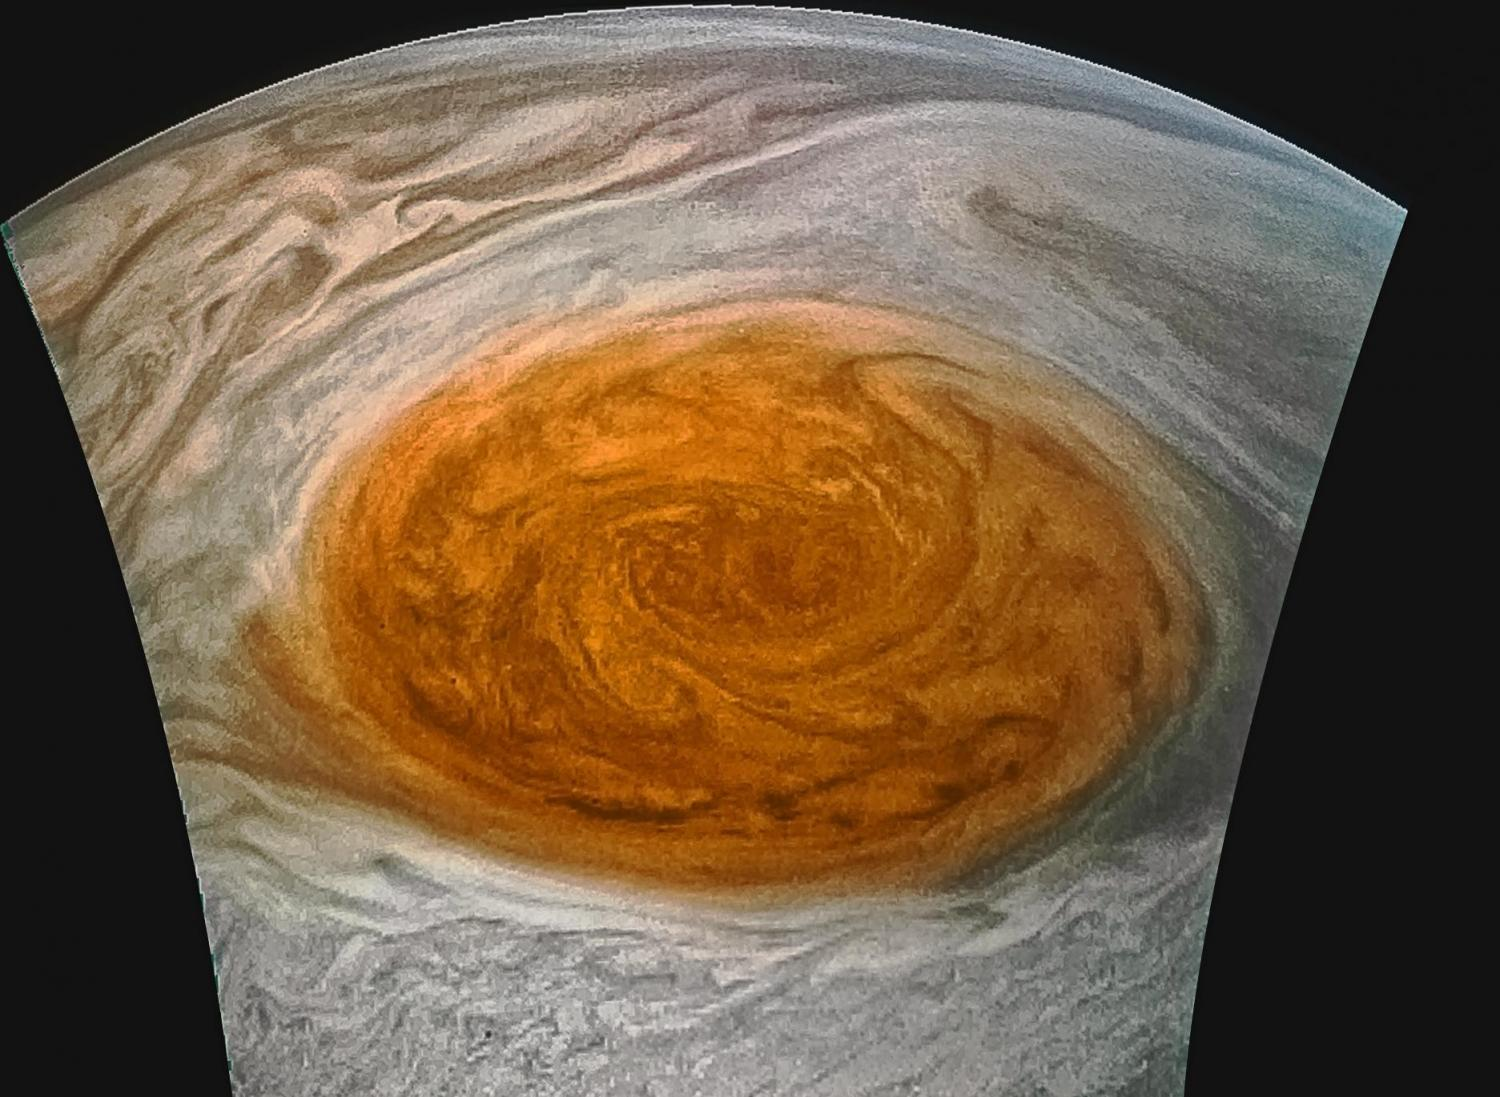 After 350 Years, Jupiter's Great Red Spot Finally Probed Successfully!